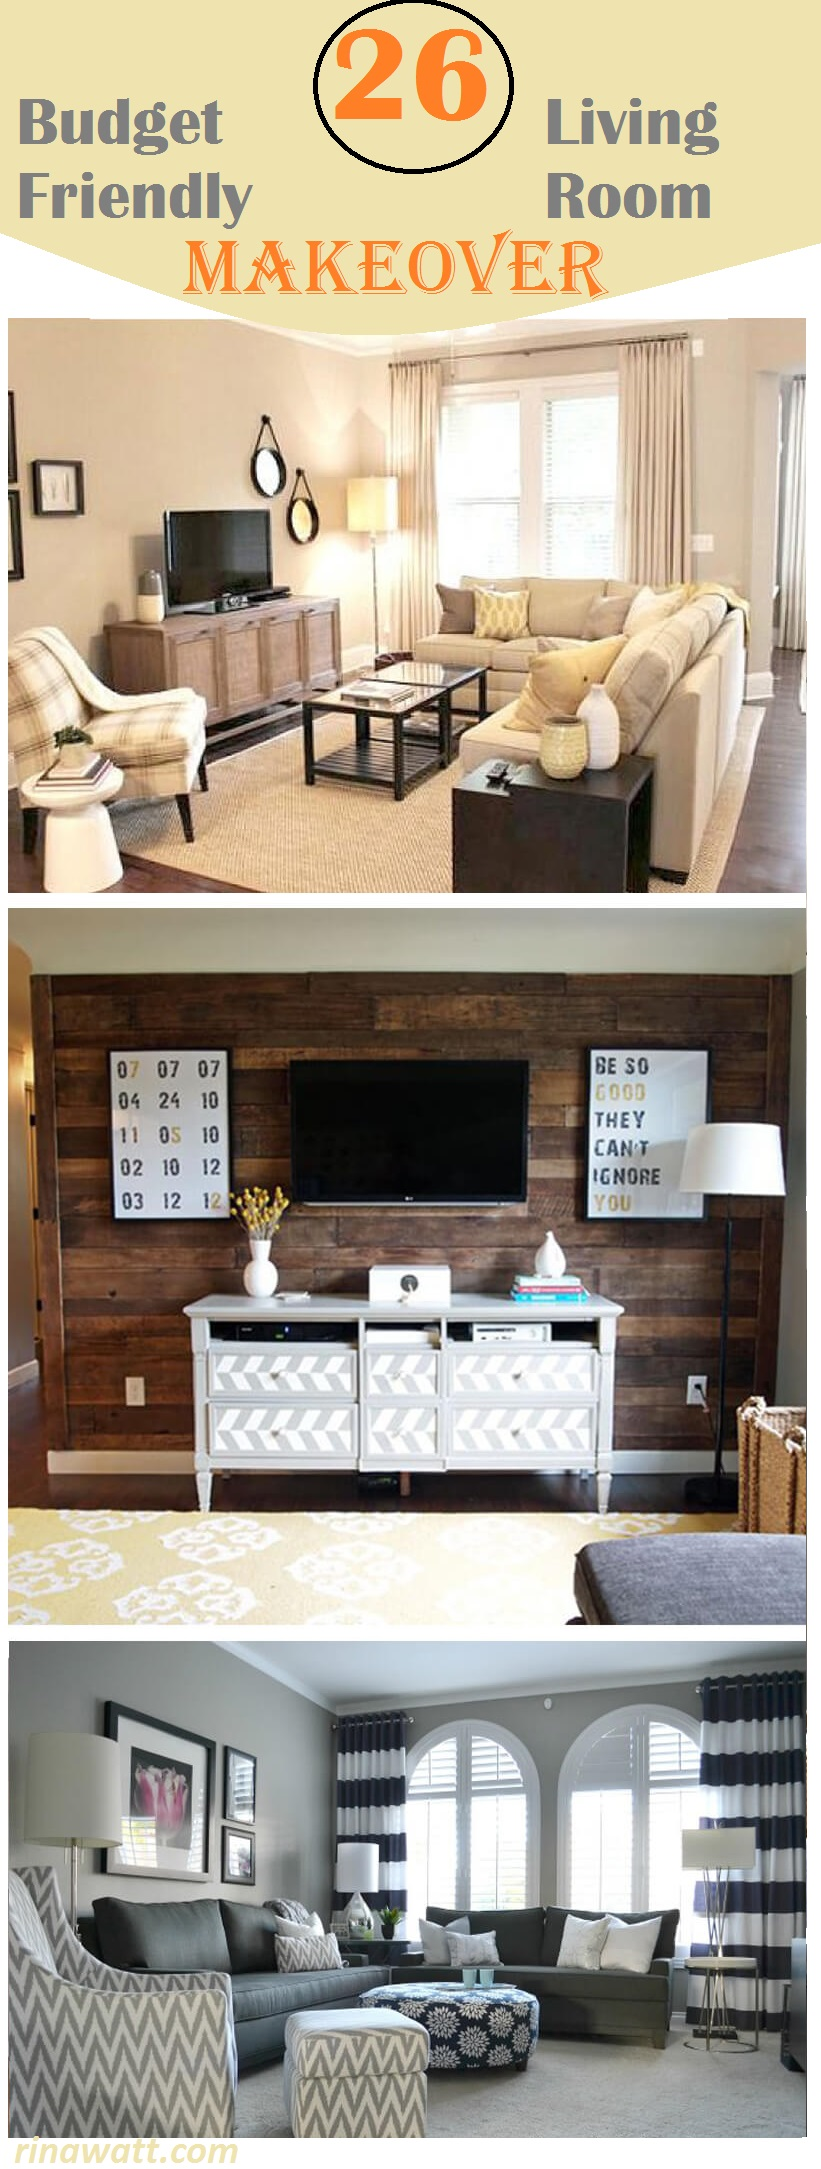 Image of: Before And After 26 Budget Friendly Living Room Makeovers To Inspire You Rina Watt Blogger Home Decor Diy And Recipes